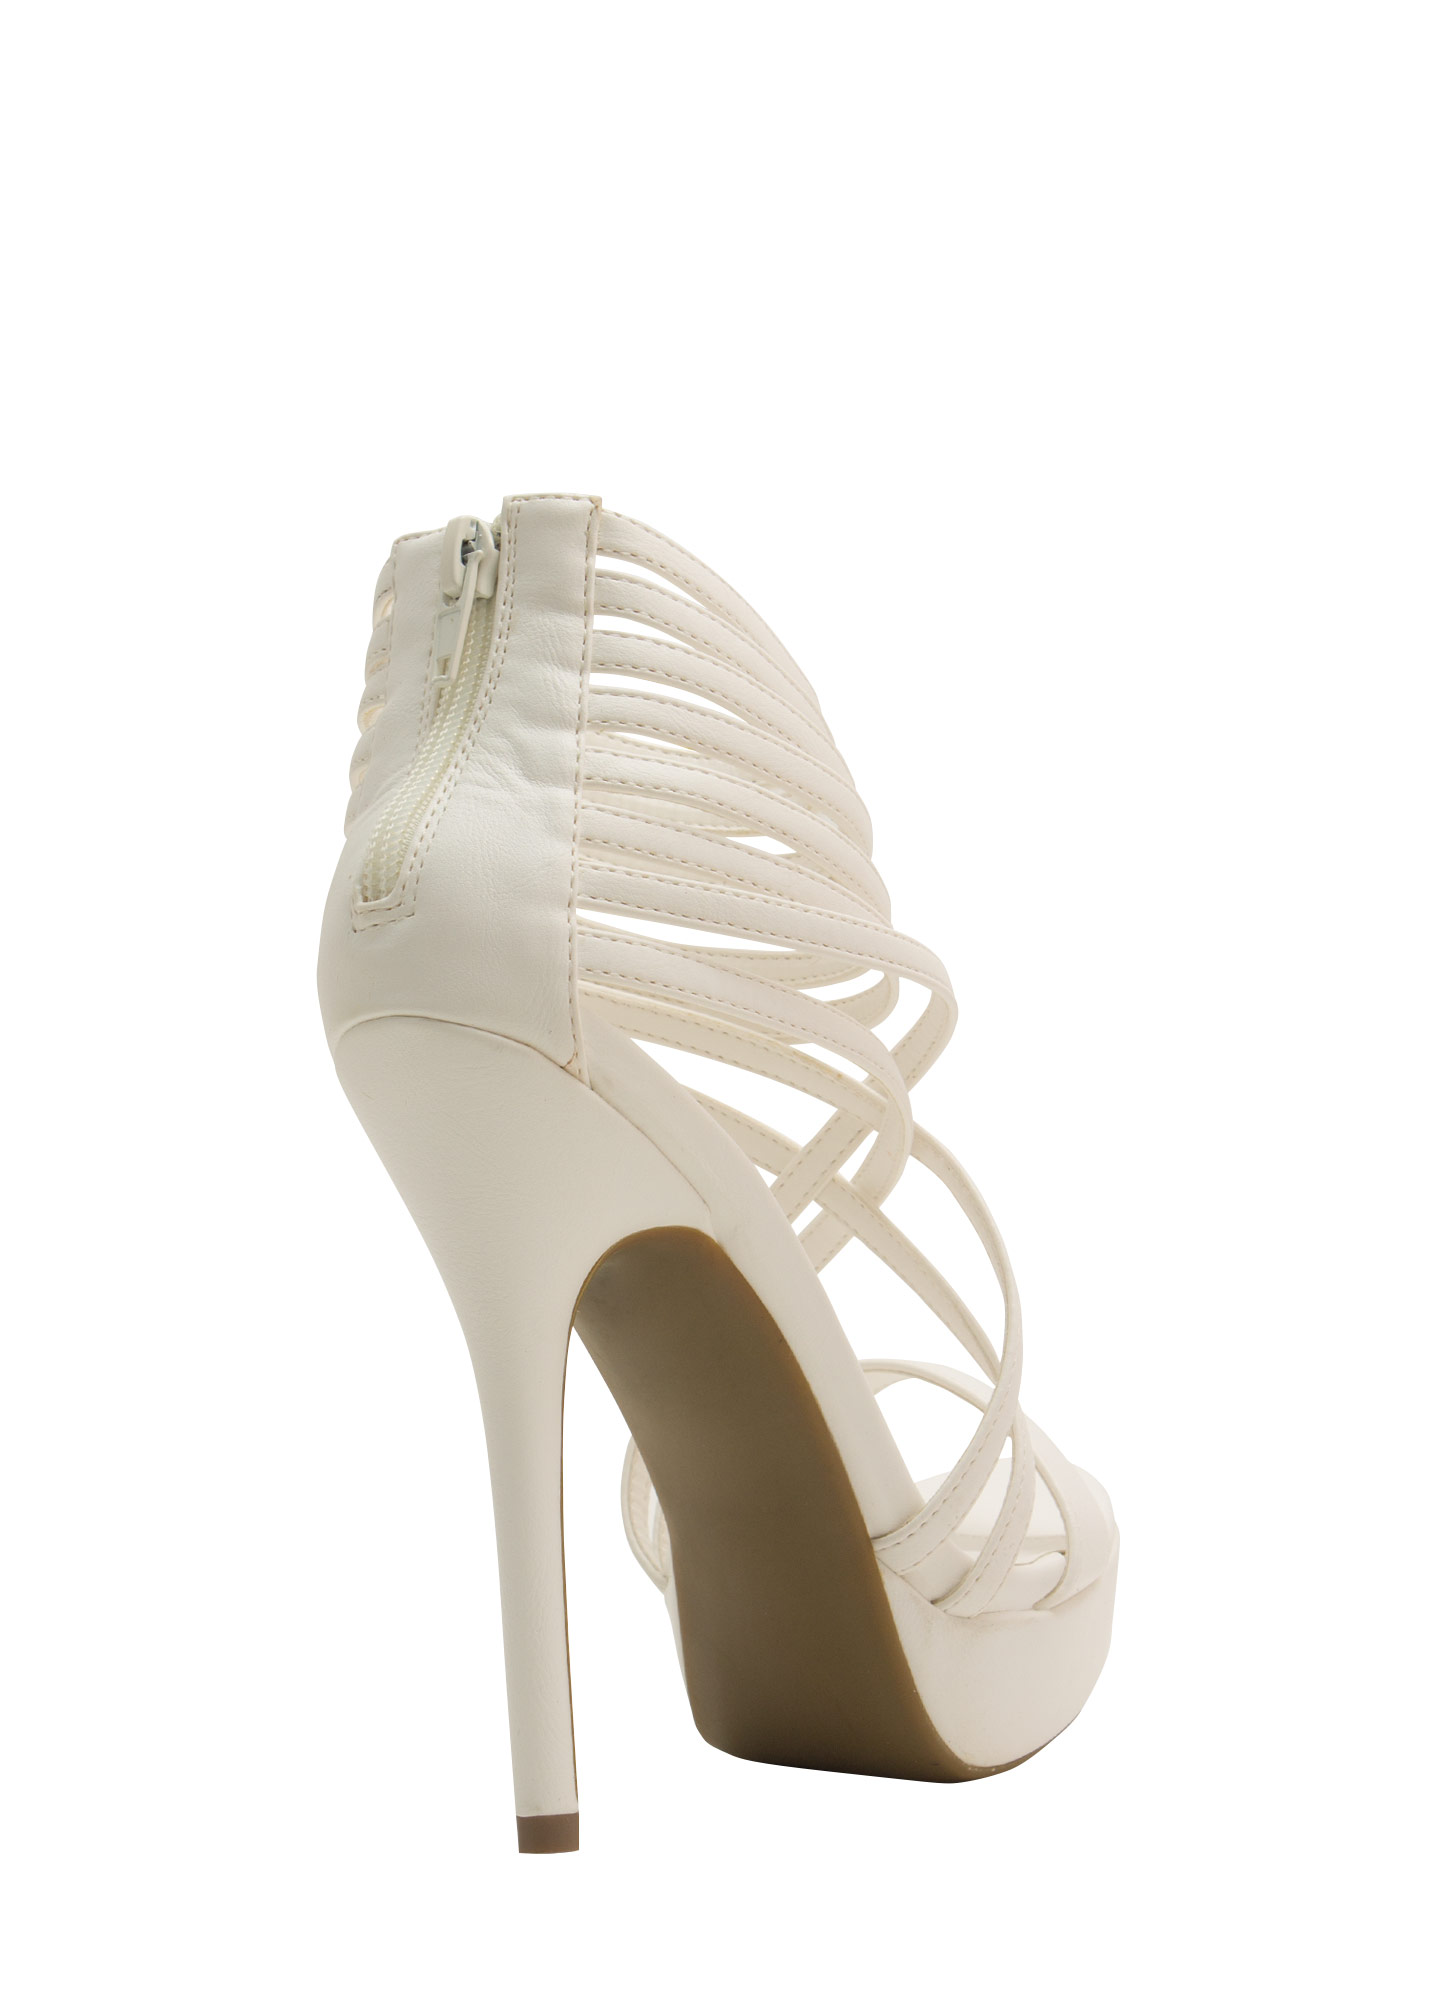 Strap Attack Faux Leather Heels WHITE